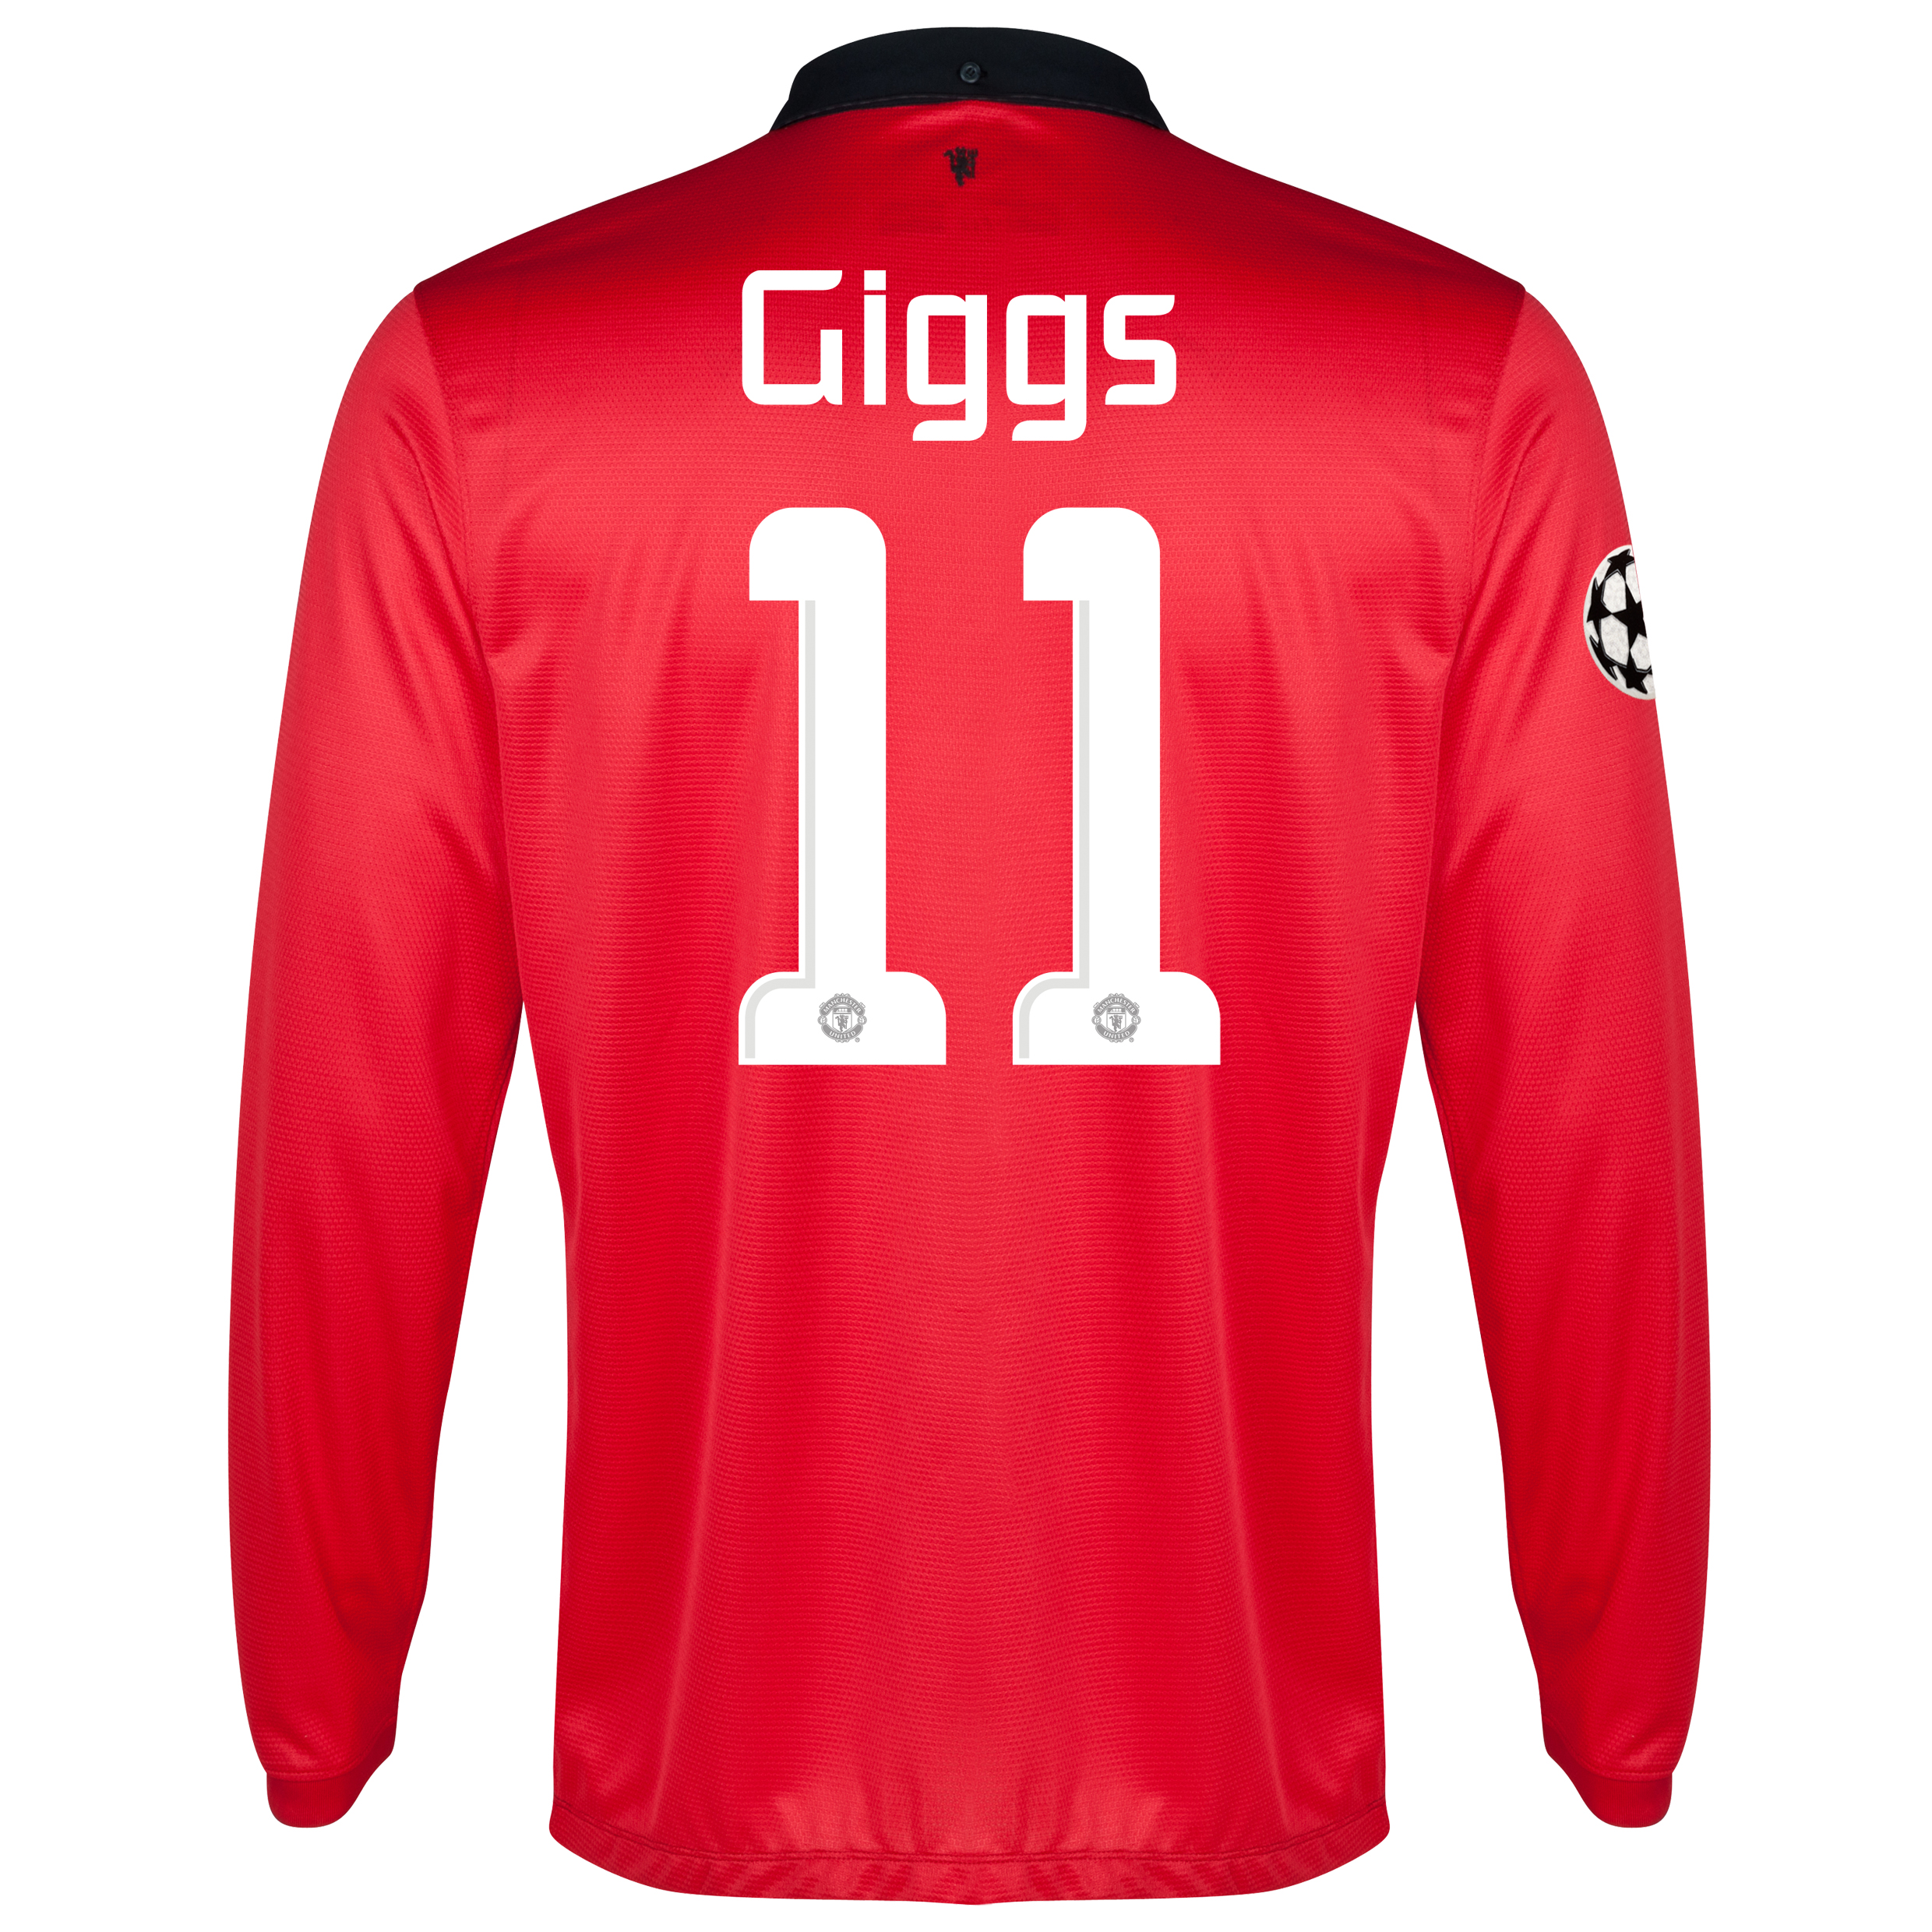 Manchester United UEFA Champions League Home Shirt 2013/14 - Long Sleeved with Giggs 11 printing